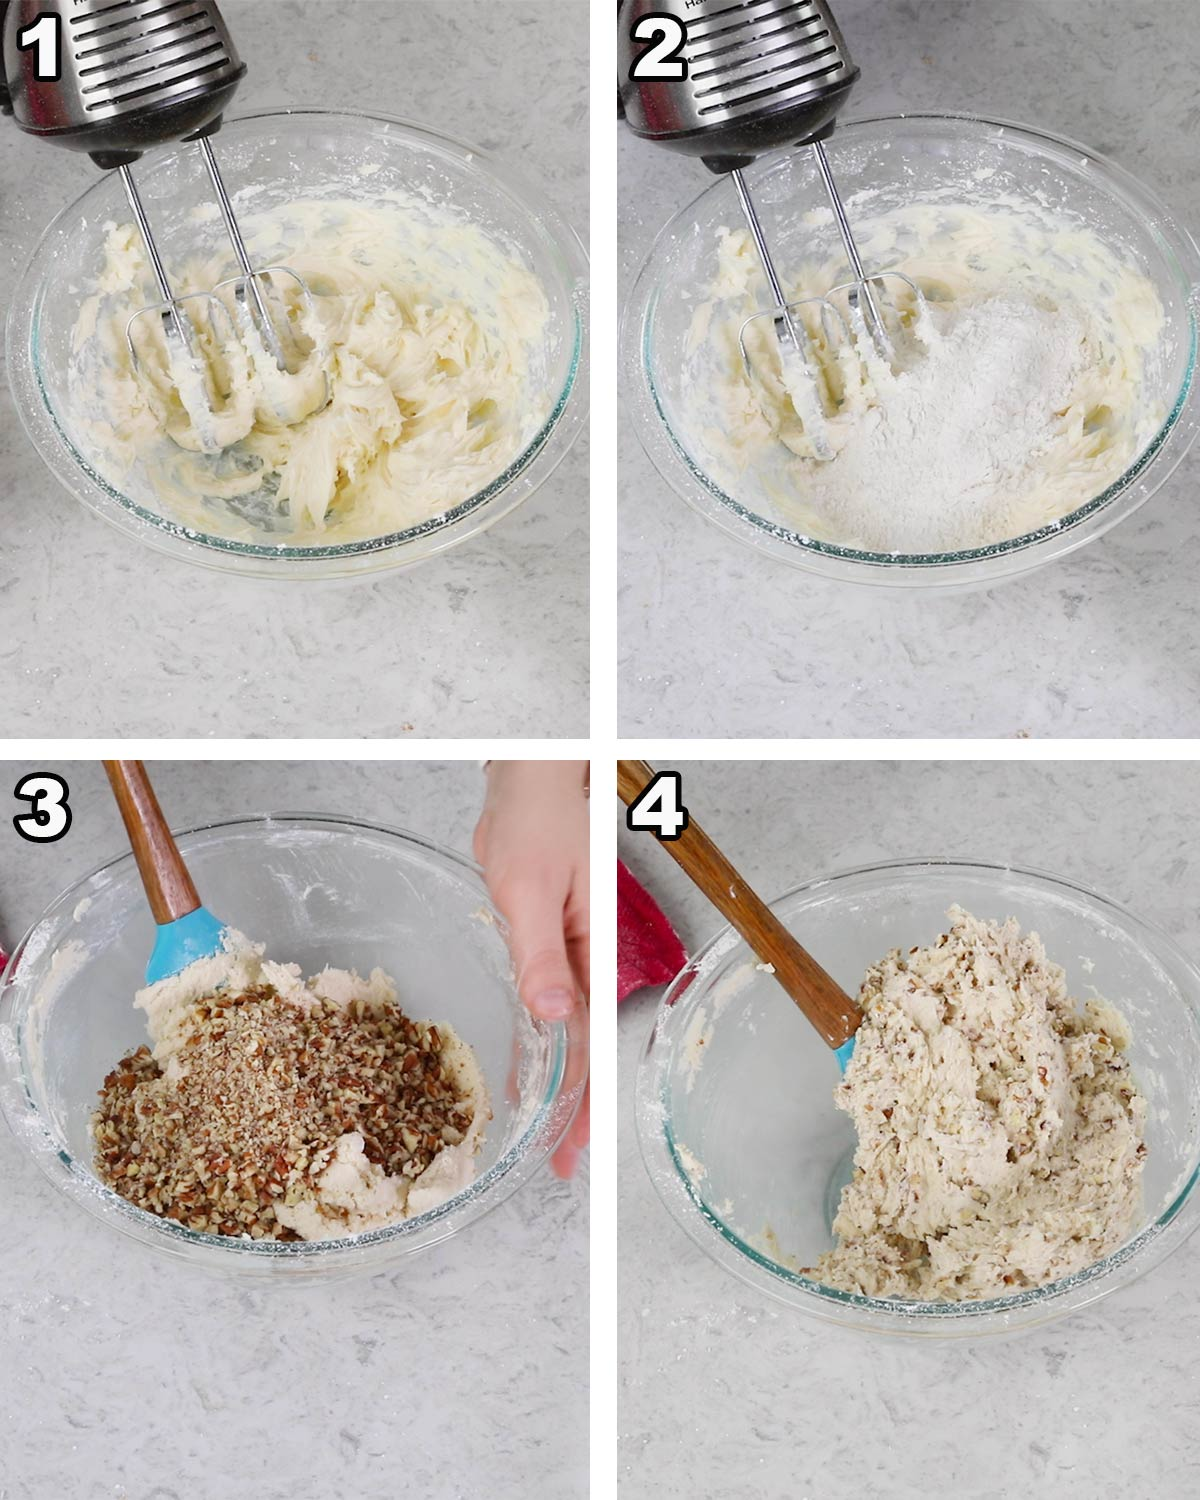 collage of making russian tea cakes: 1)creaming butter sugar vanilla 2) stirring in flour/cornstarch/salt 3) folding in nuts 4) finished dough